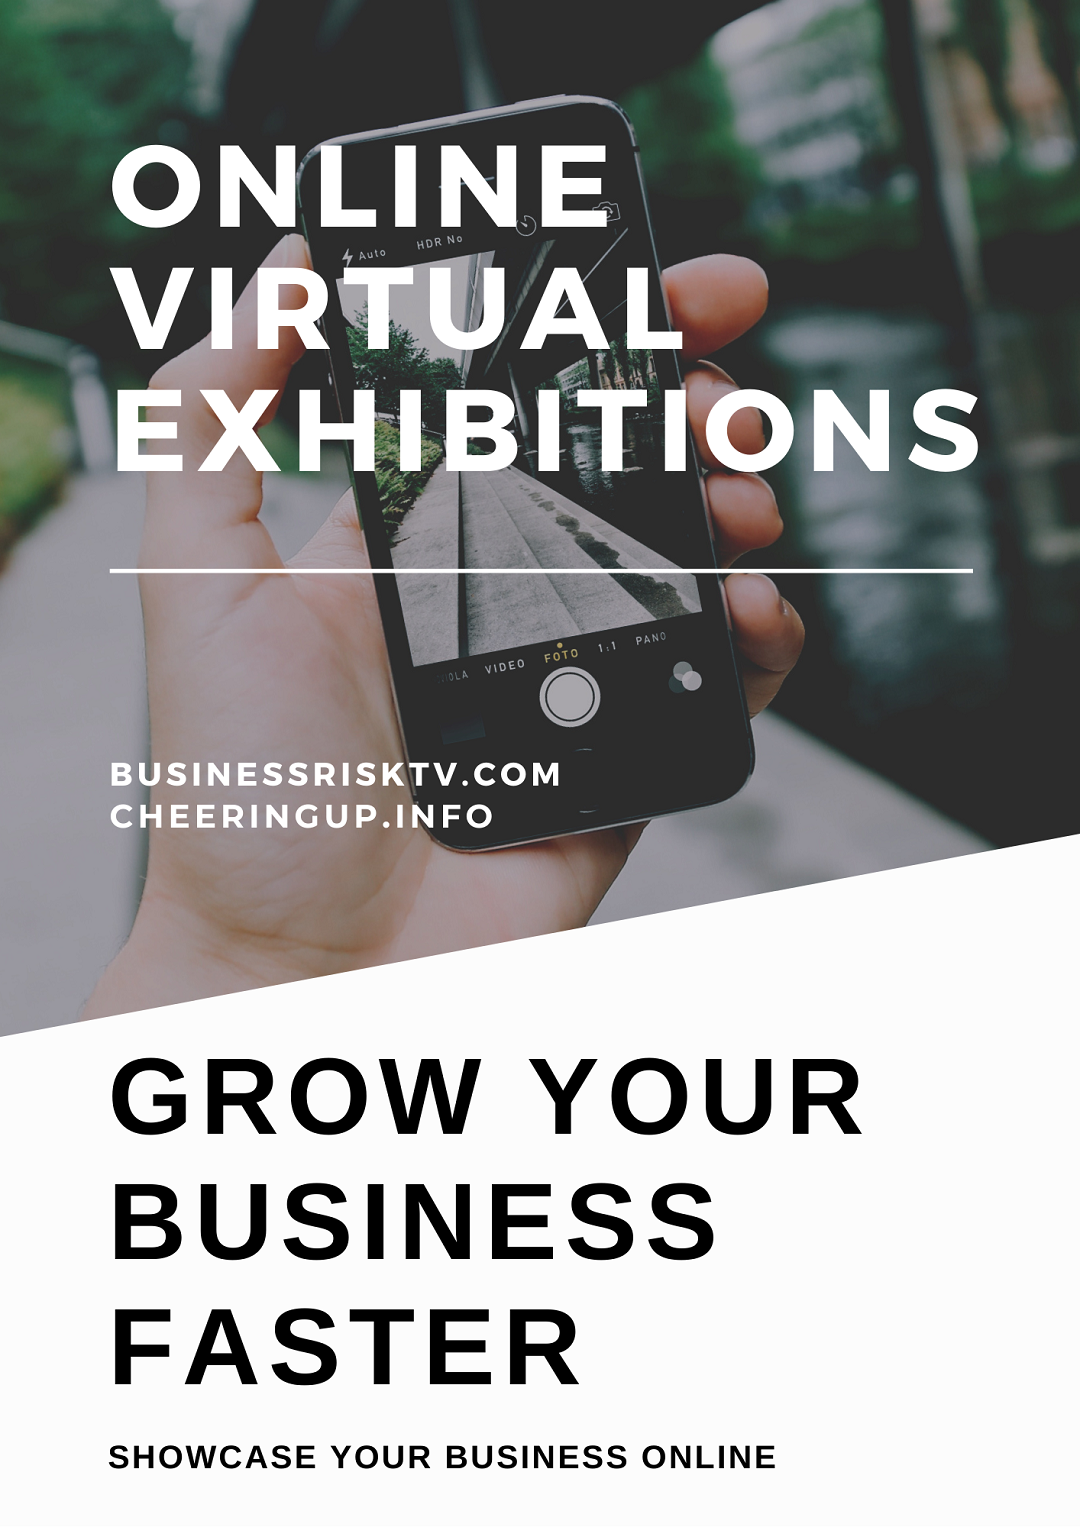 Virtual Exhibitions Online With BusinessRiskTV